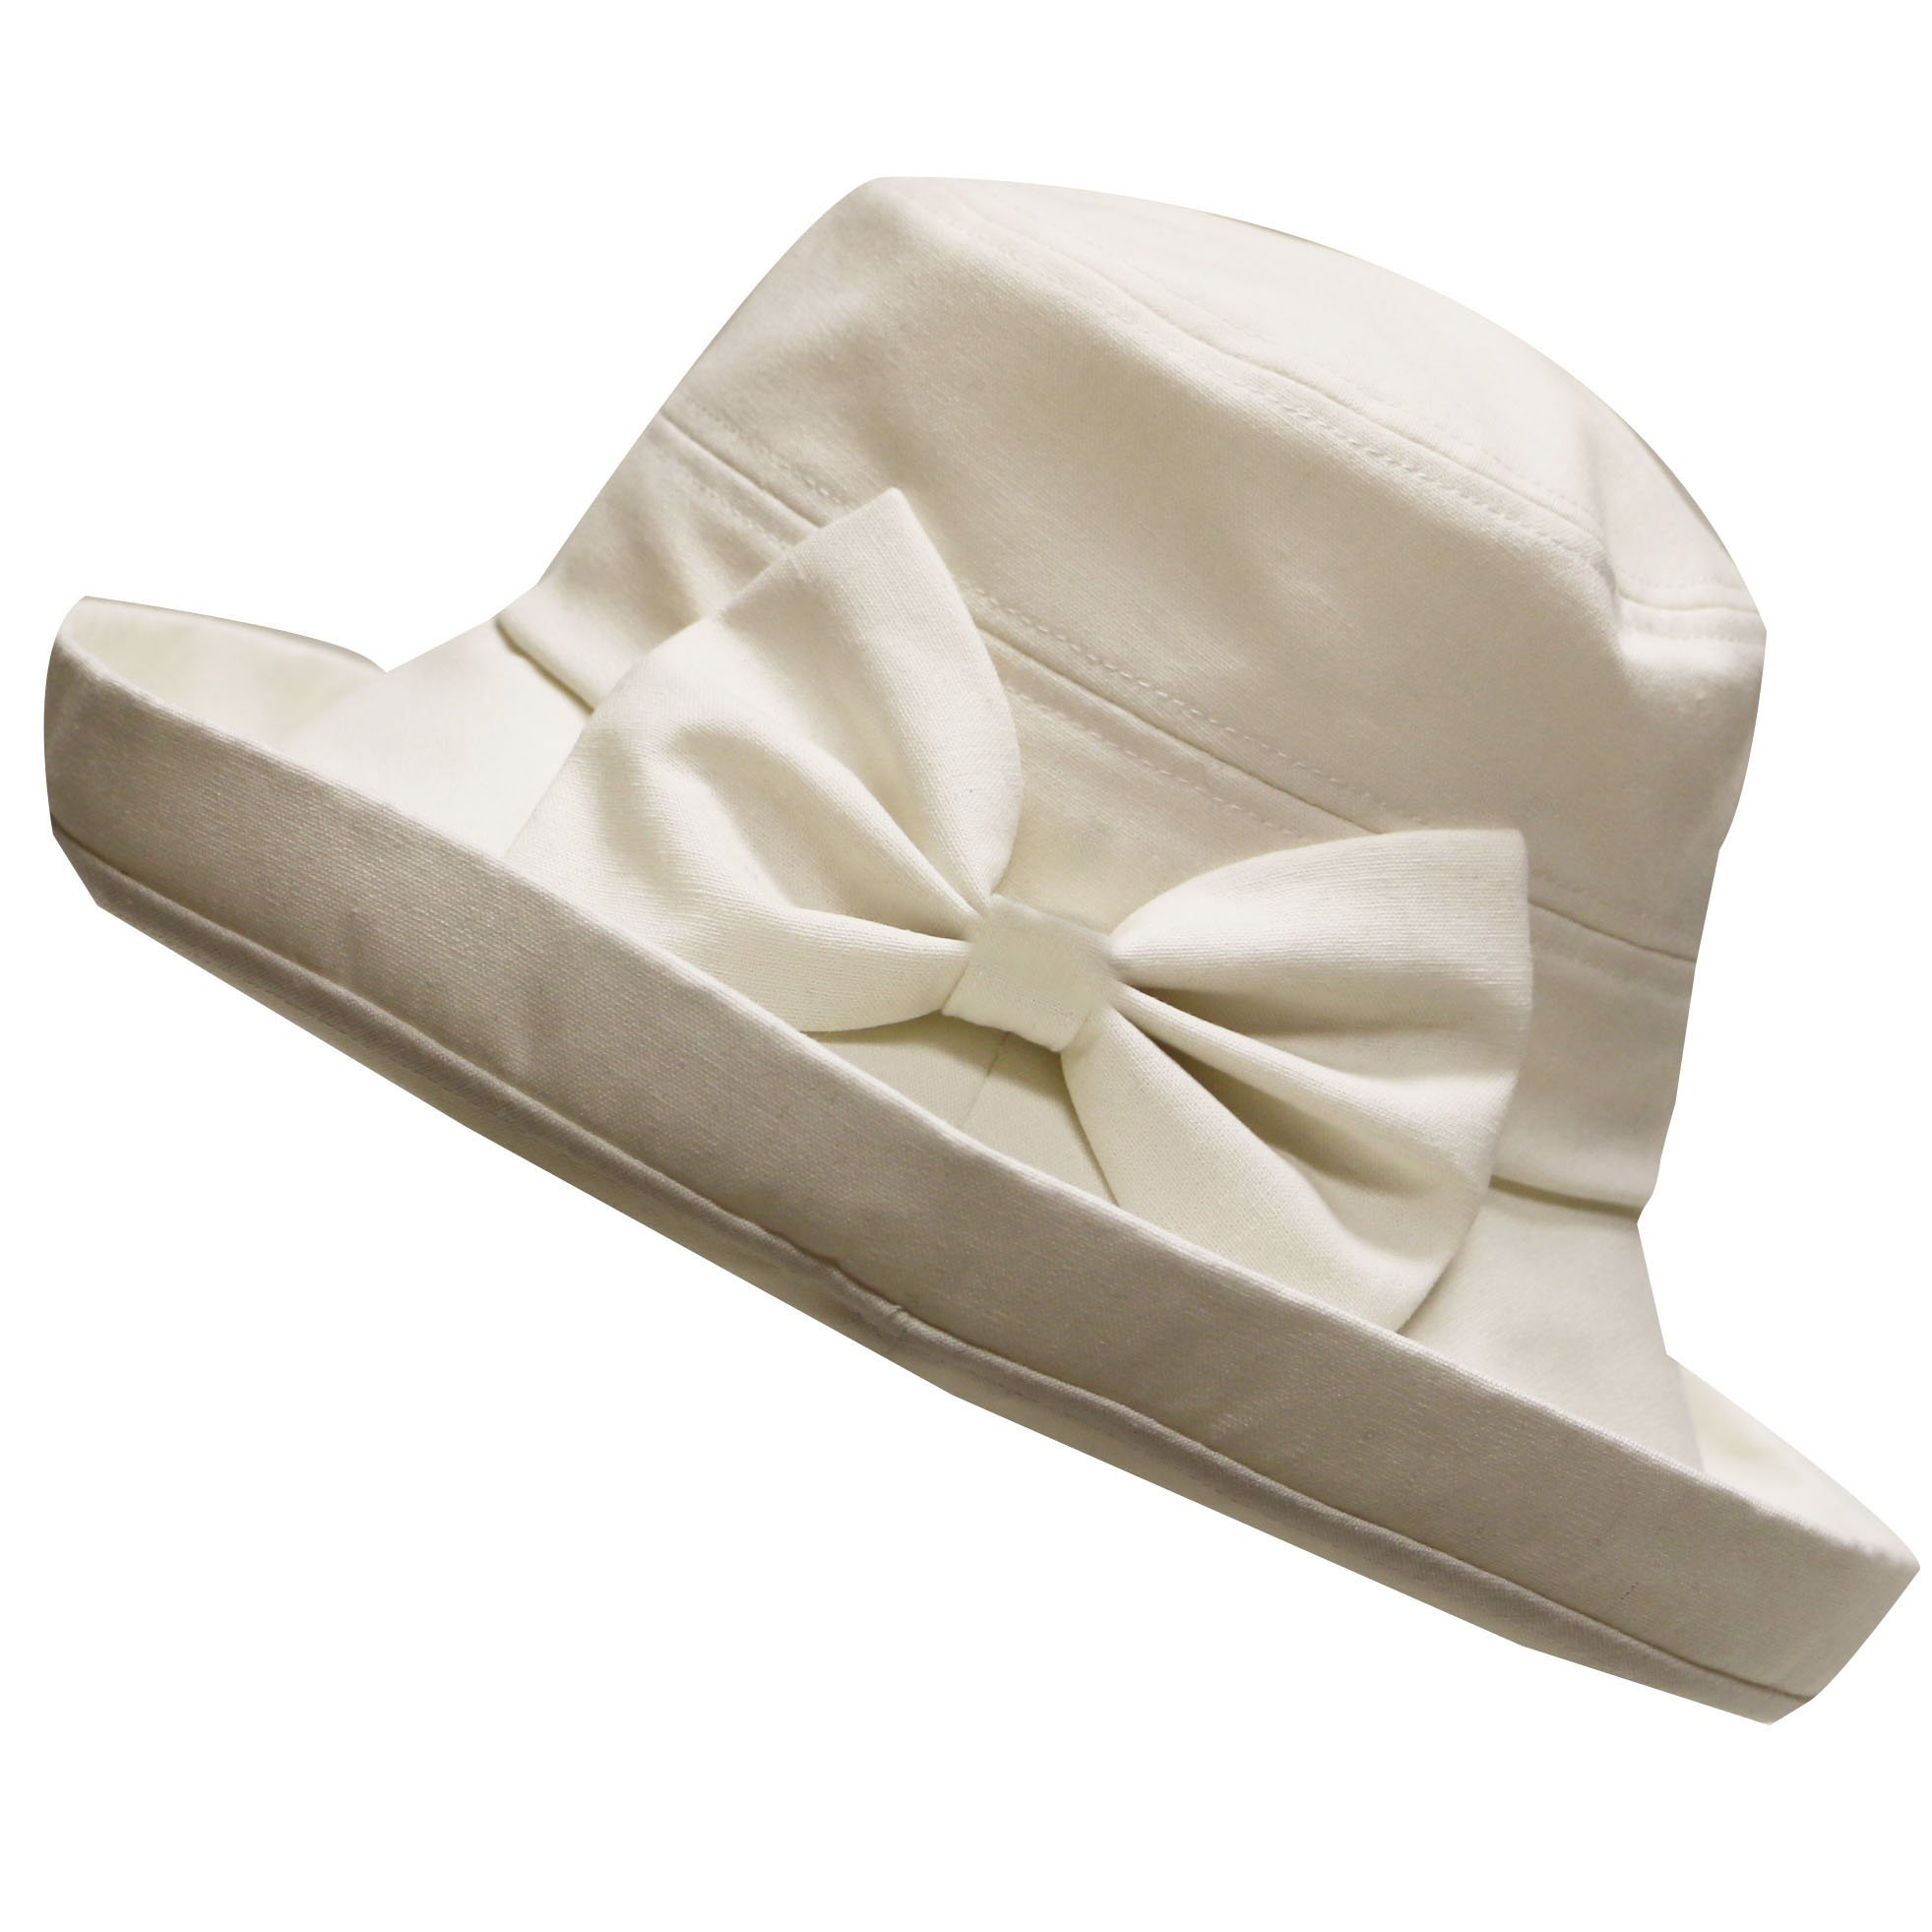 APPARELISM Women's Summer SPF 50 Foldable Packable Sun Hat with Bow.(Beige)